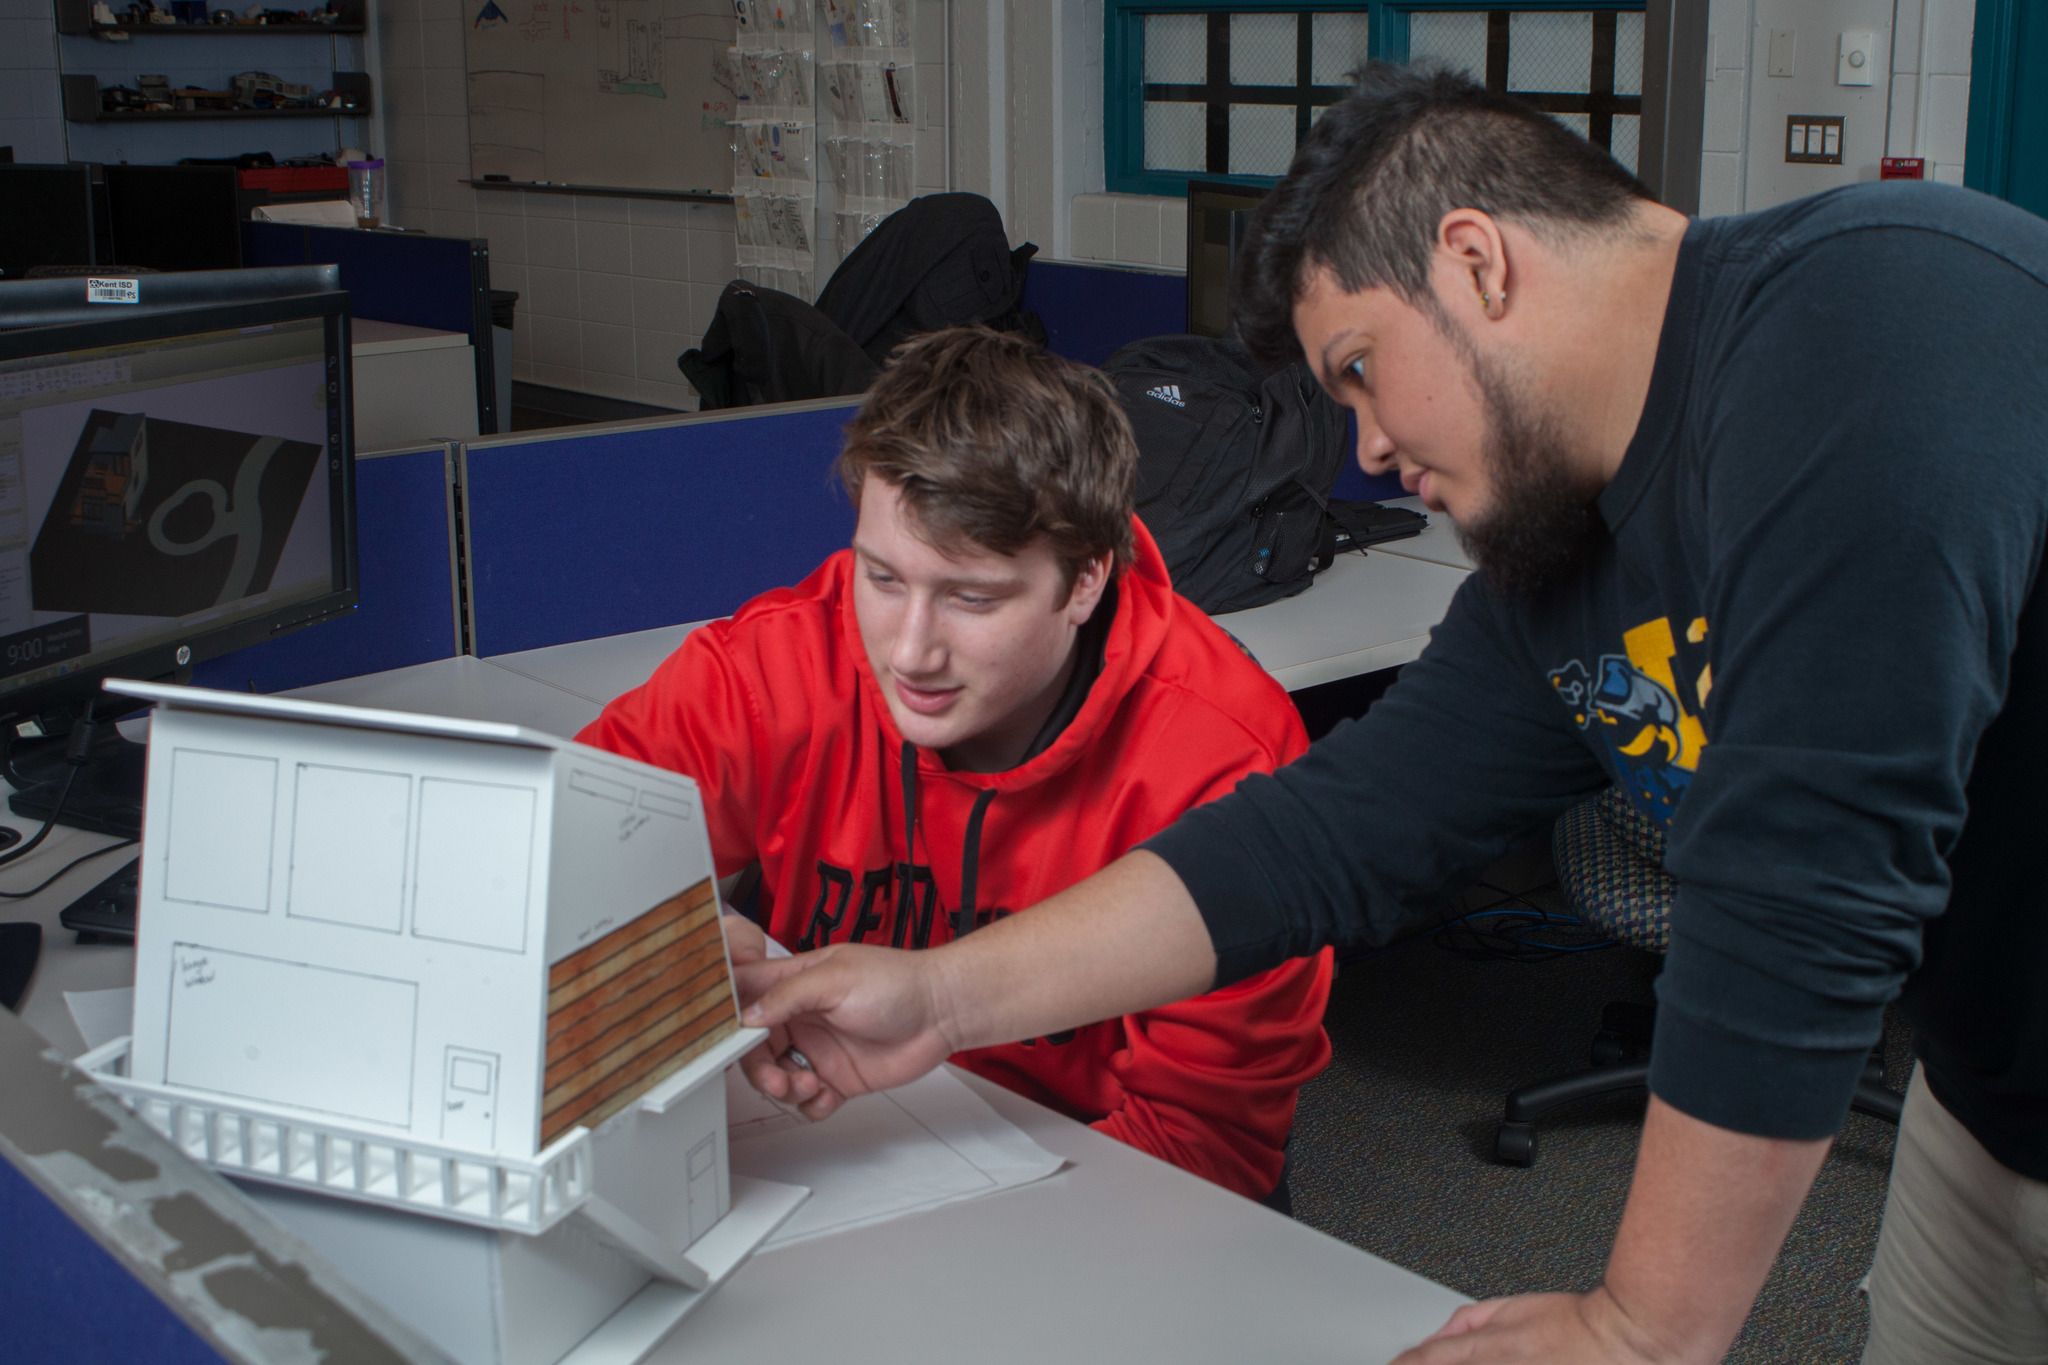 Two male students are discussing design ideas or revisions to an architectural house model at a classroom workstation.